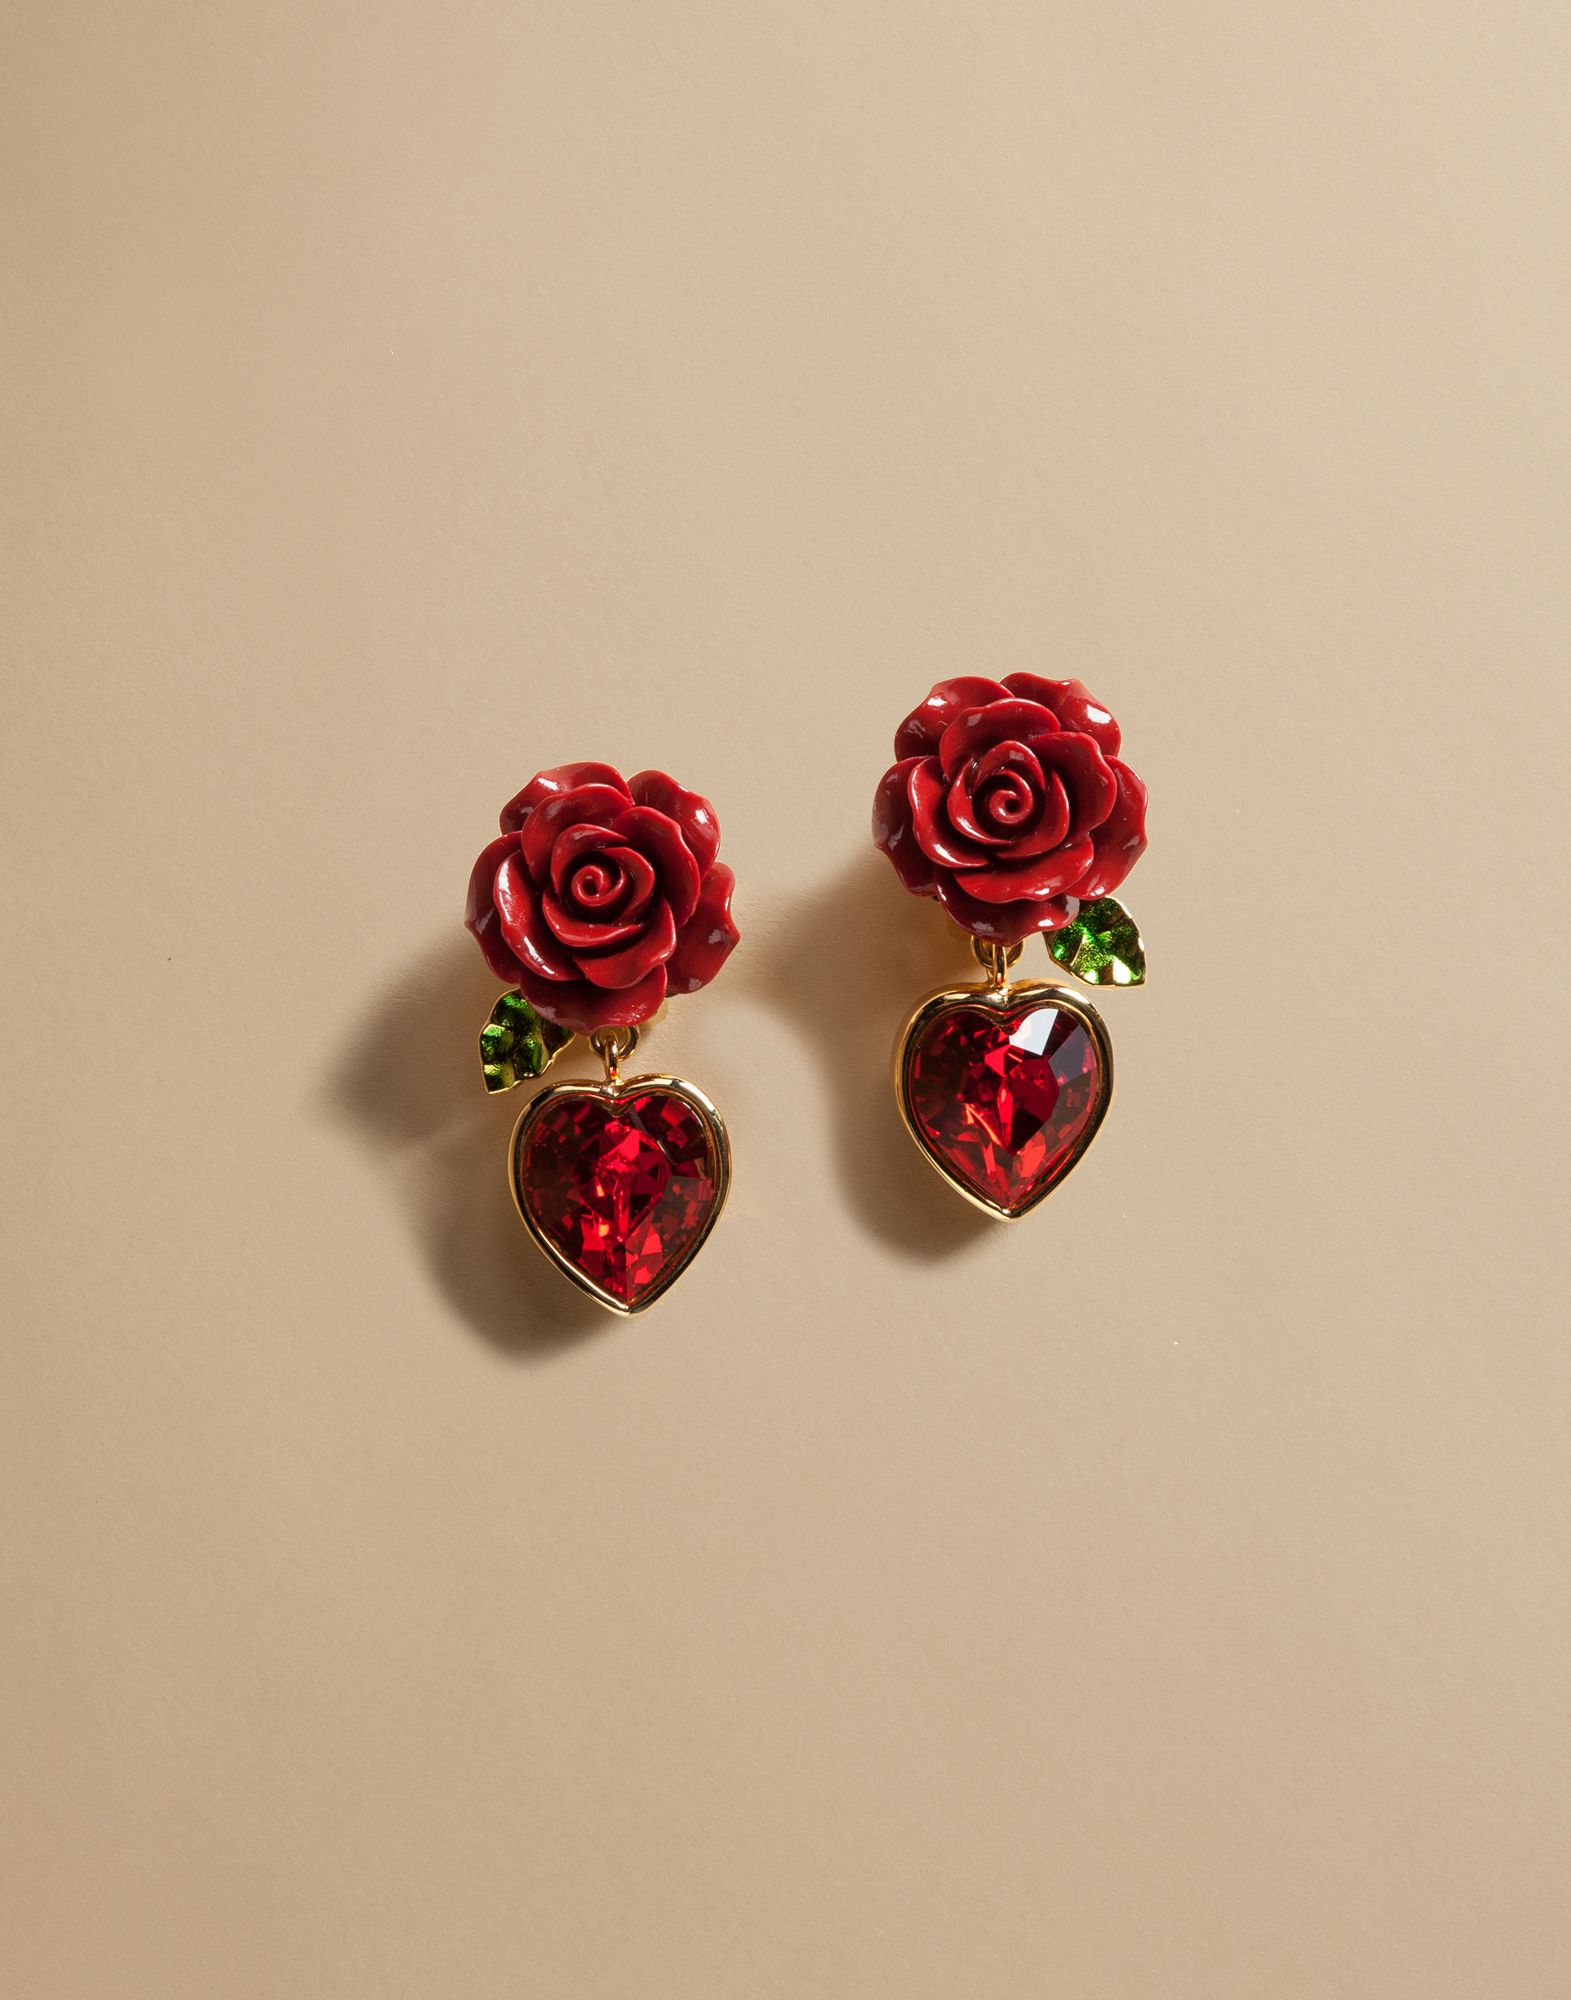 Crystal and resin floral earrings Dolce & Gabbana t7tJHC